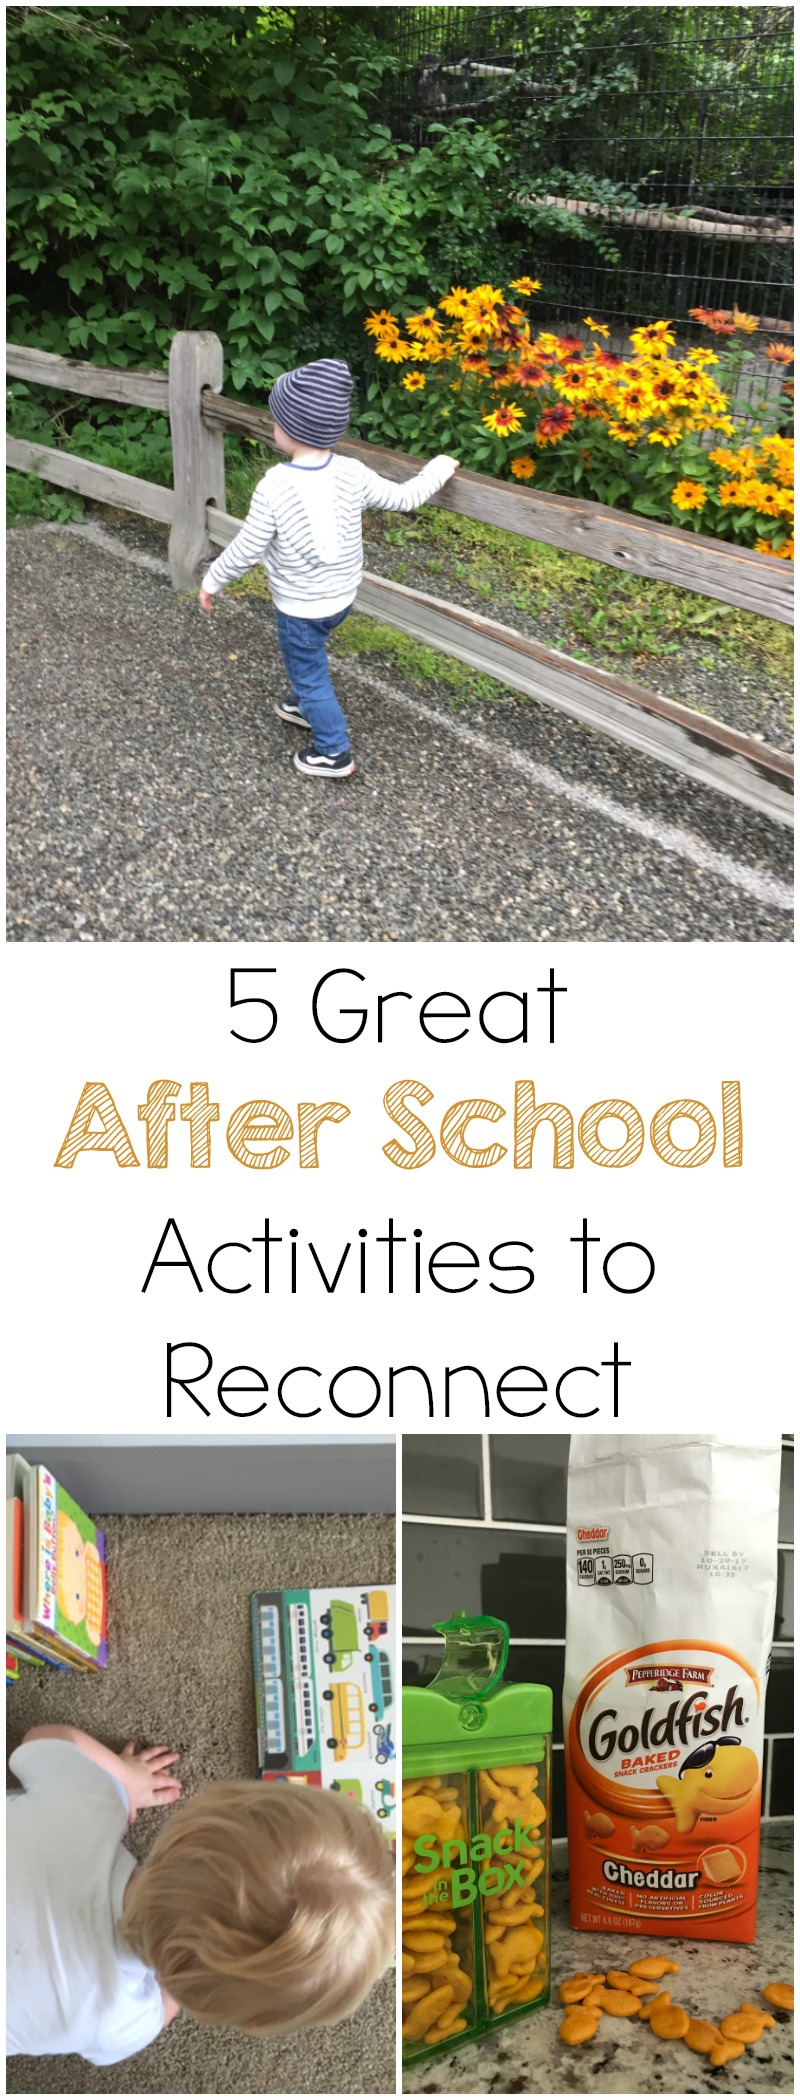 5 Great After School Activities to Reconnect // Life Anchored AD